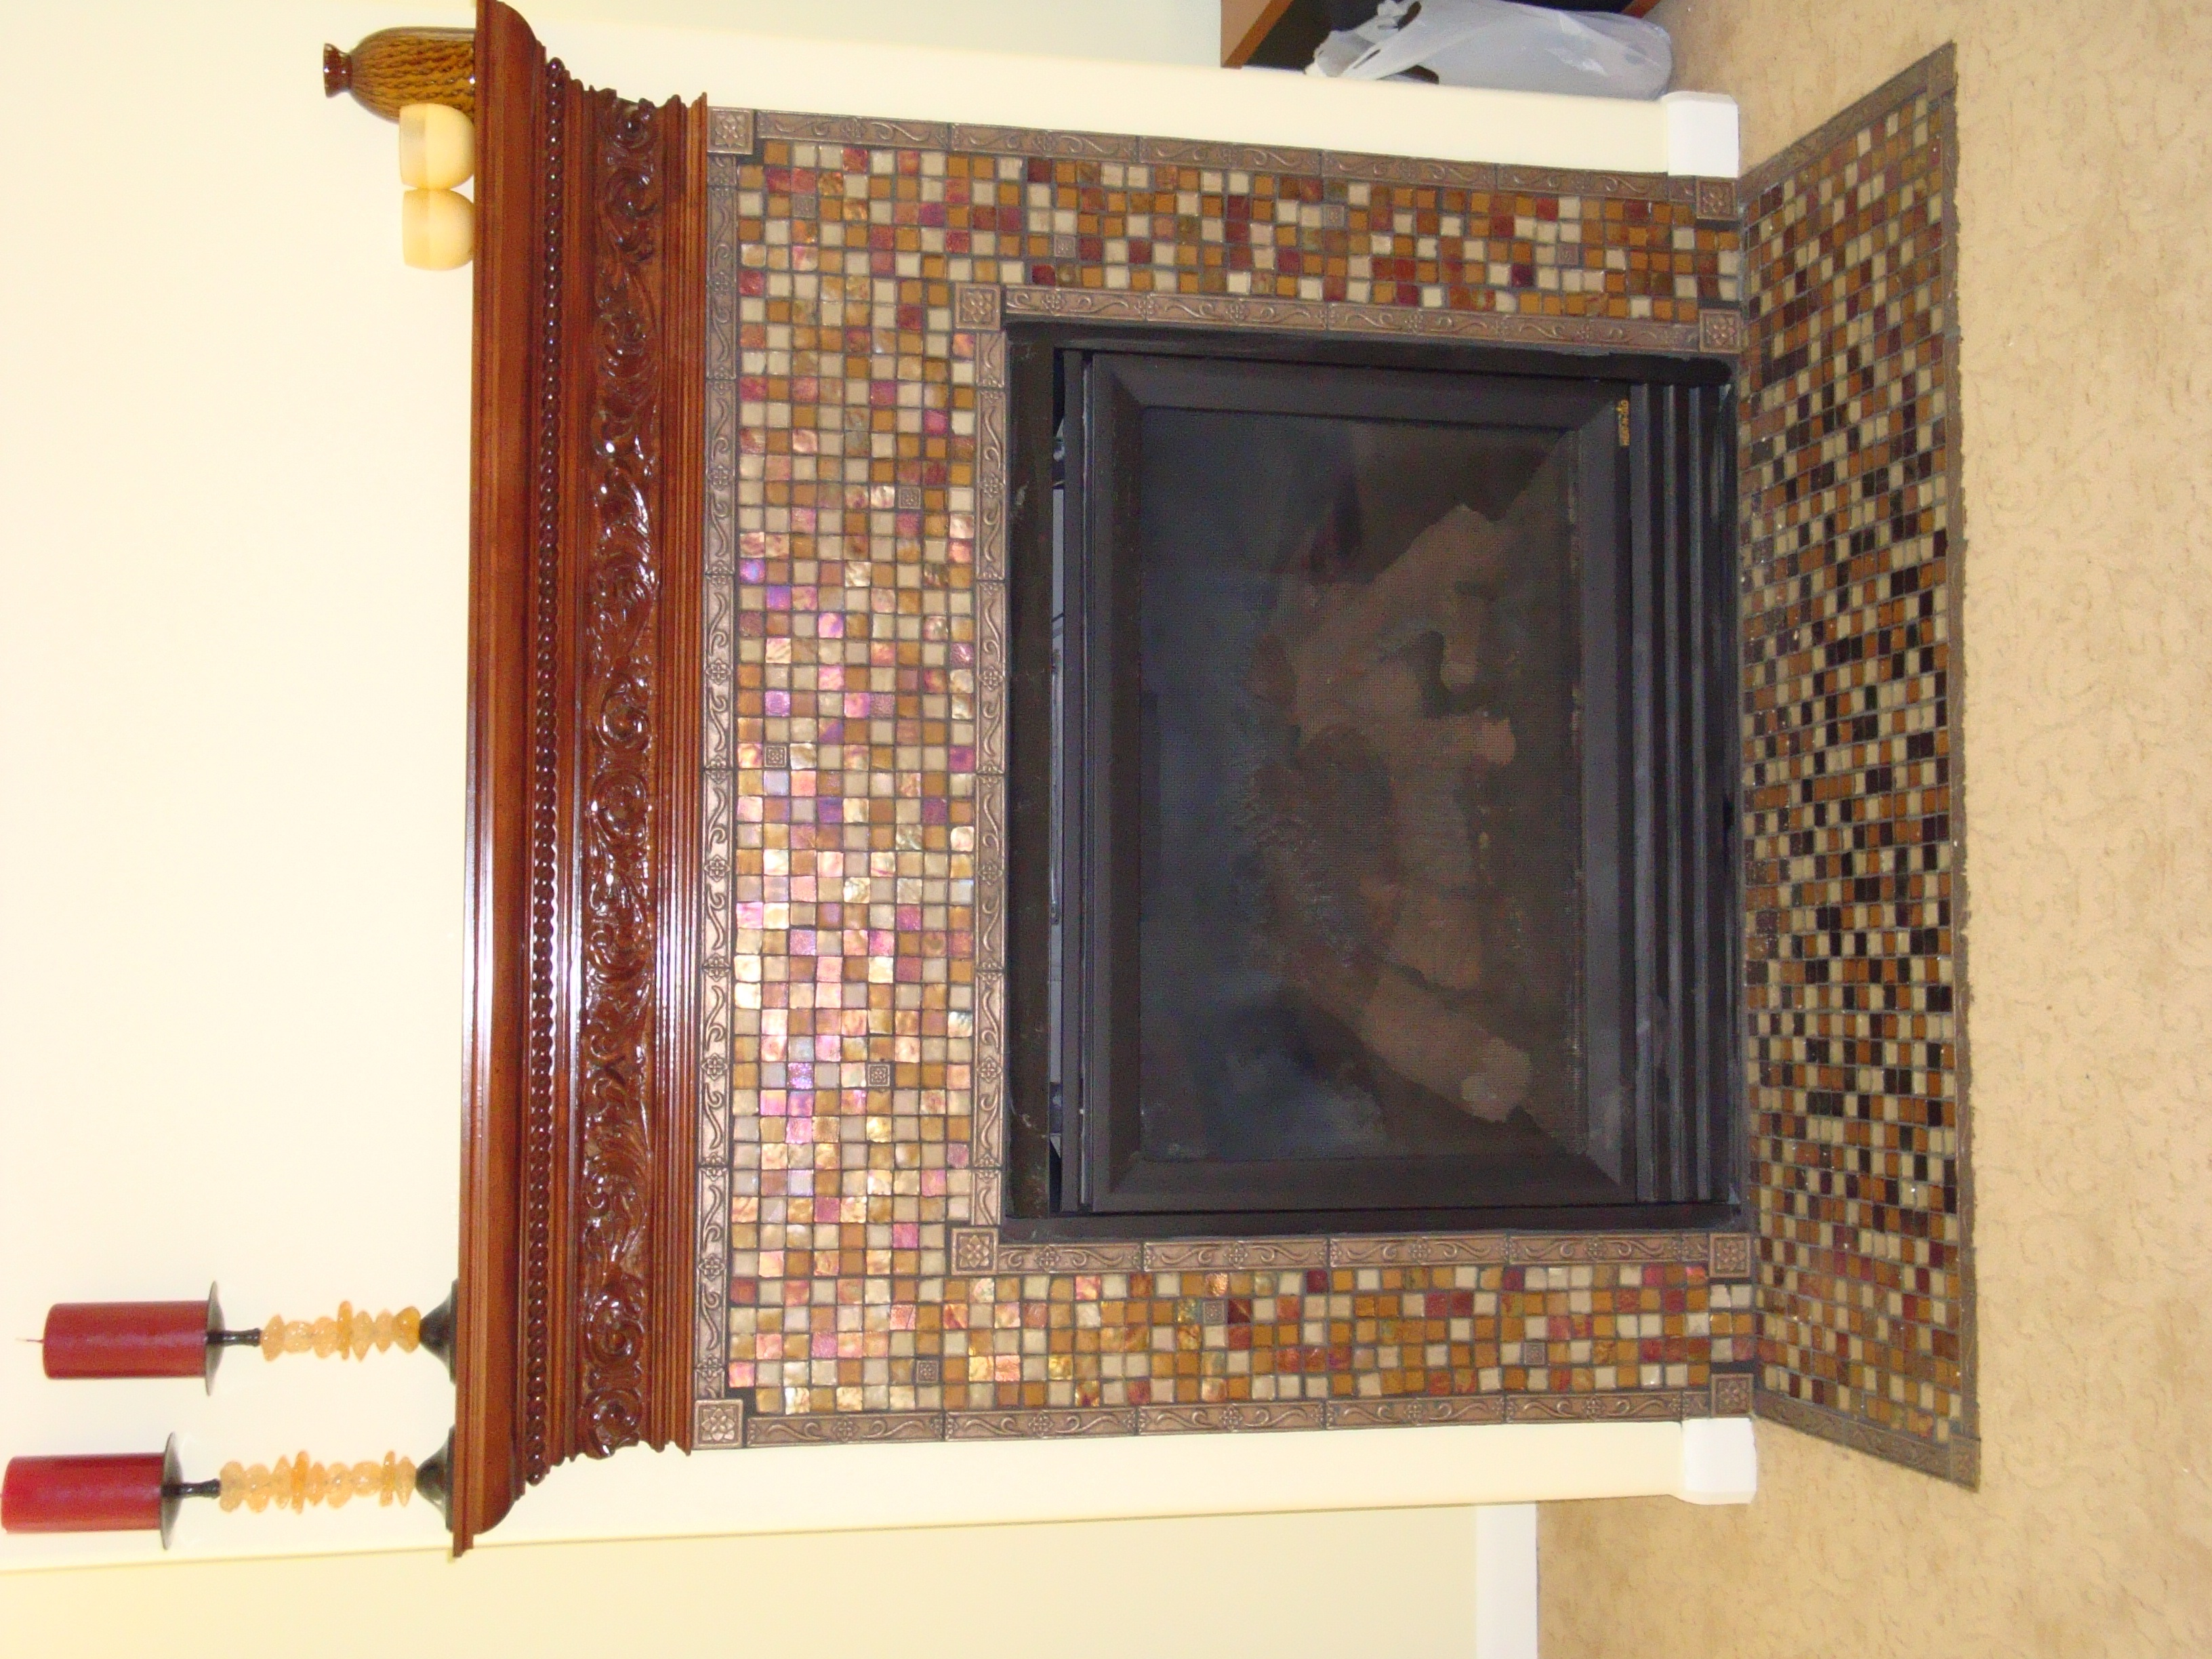 Glass Mosaic Tile Fireplace Surround And Wood Mantel Flickr Photo Sharing